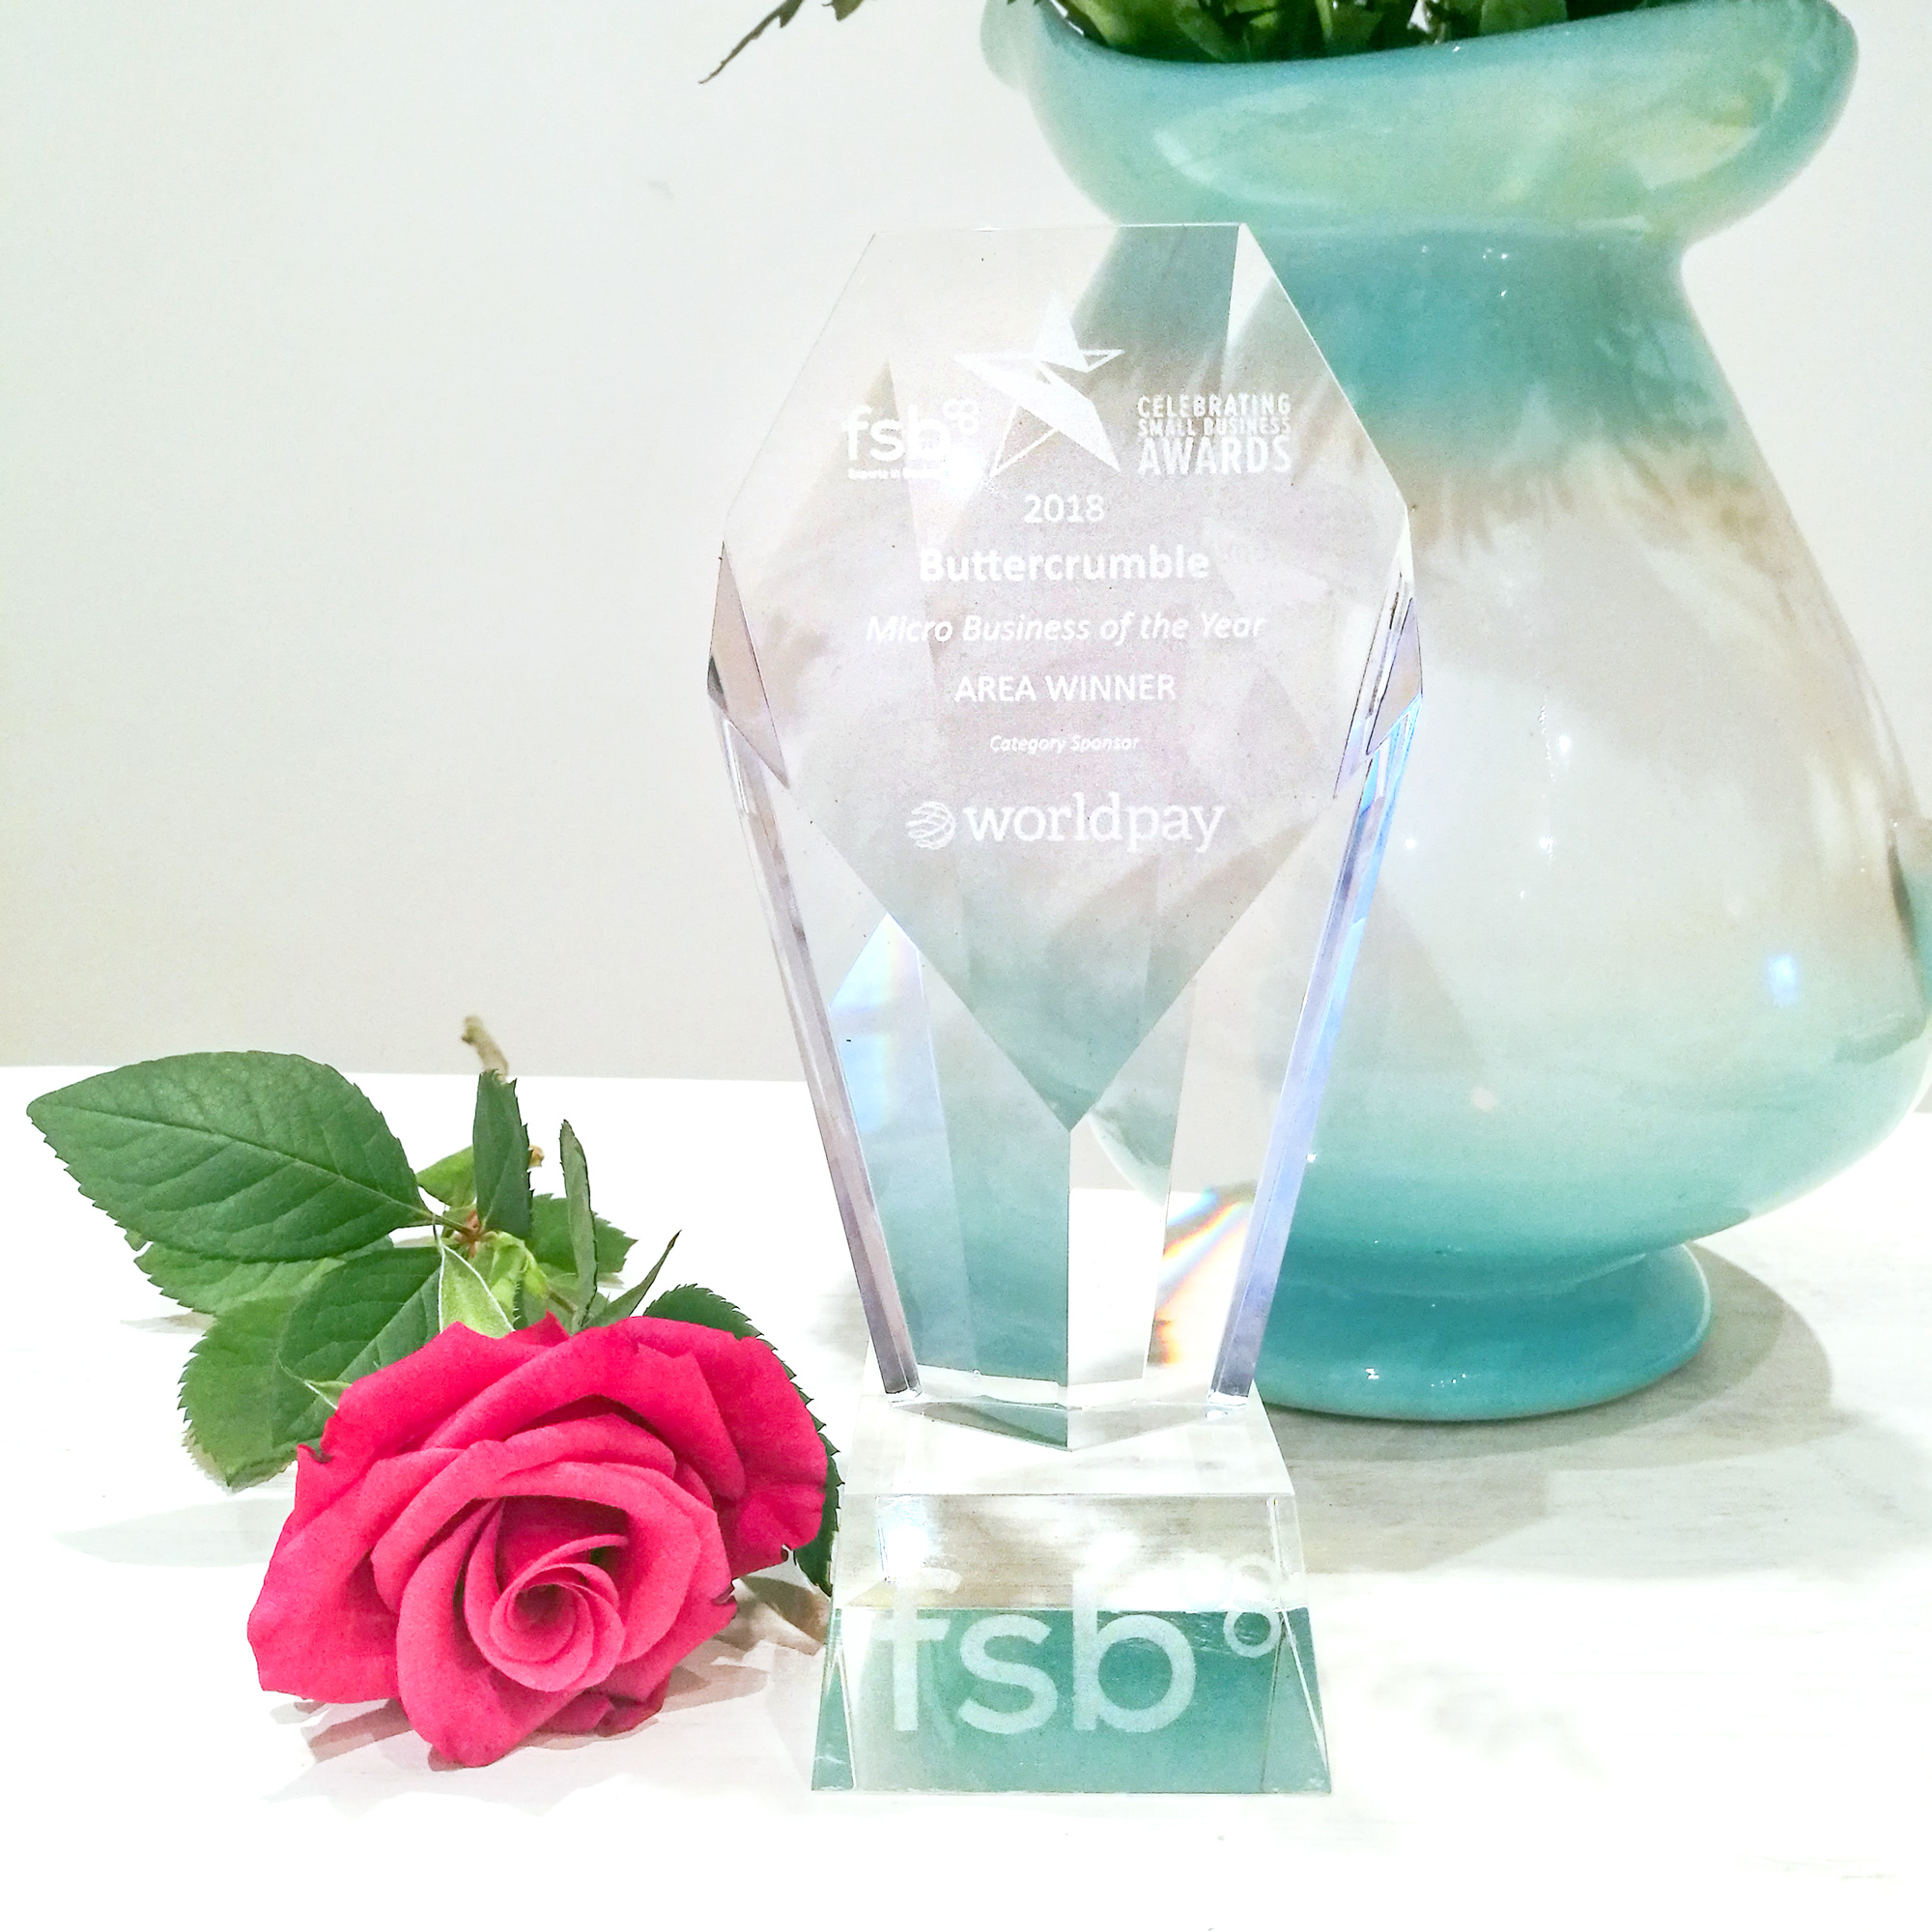 FSB-Micro-Business-of-the-Year-Yorkshire-2018---Buttercrumble-Web.jpg